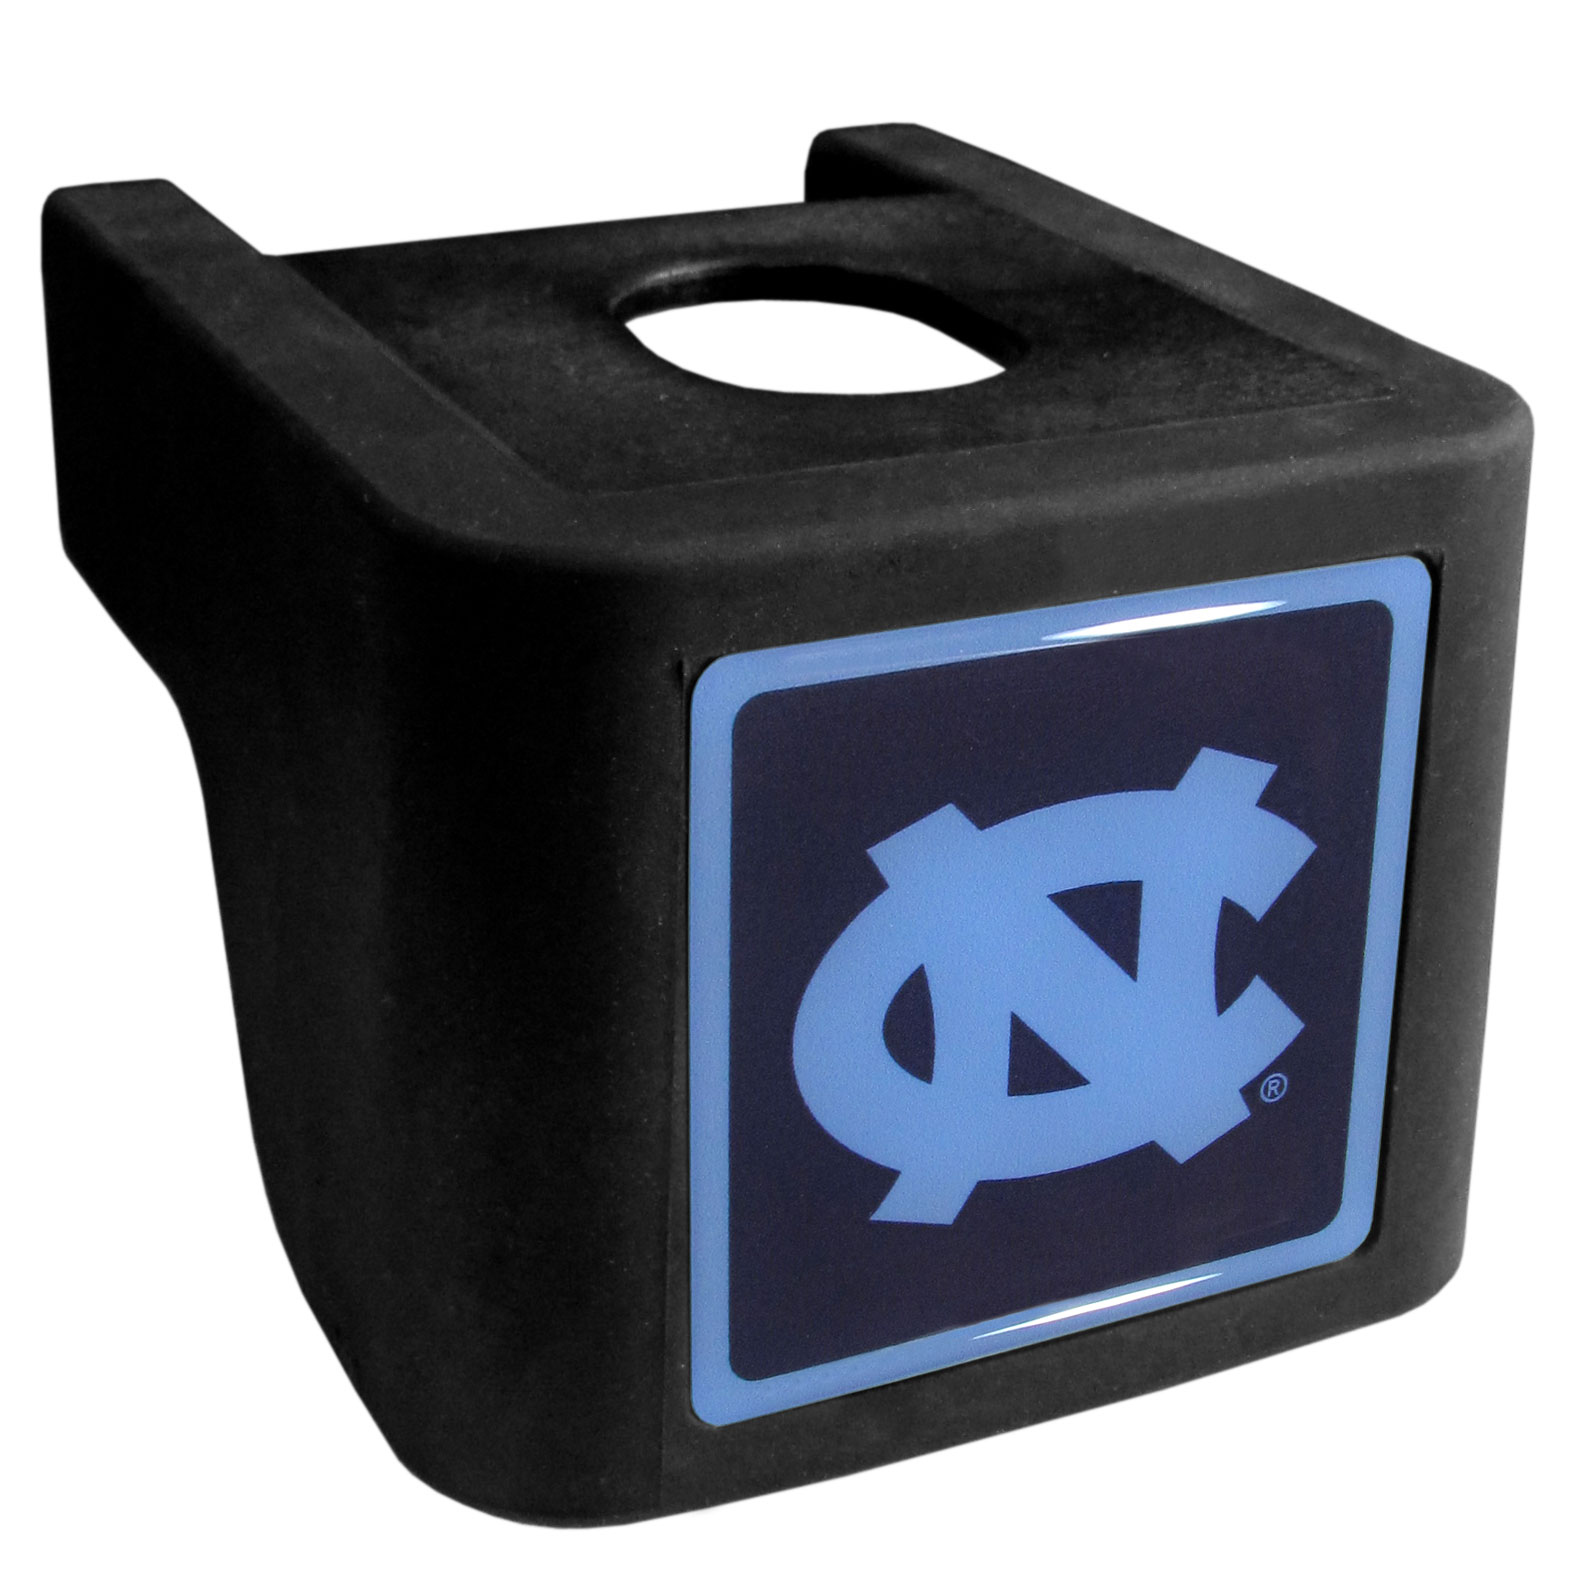 N. Carolina Tar Heels Shin Shield Hitch Cover - This unique hitch cover features a large N. Carolina Tar Heels logo. If you have ever hooked up a trailer or boat your have probably smashed your shins on the ball hitch a few times. This revolutionary shin shield hitch cover provides your much abused shins with the protection they deserve! The tough rubber hitch is rated to work with Class V hitch receivers hauling up to 17,000 gross trailer weight and 1,700 tongue weight allowing you to leave it on while hauling.